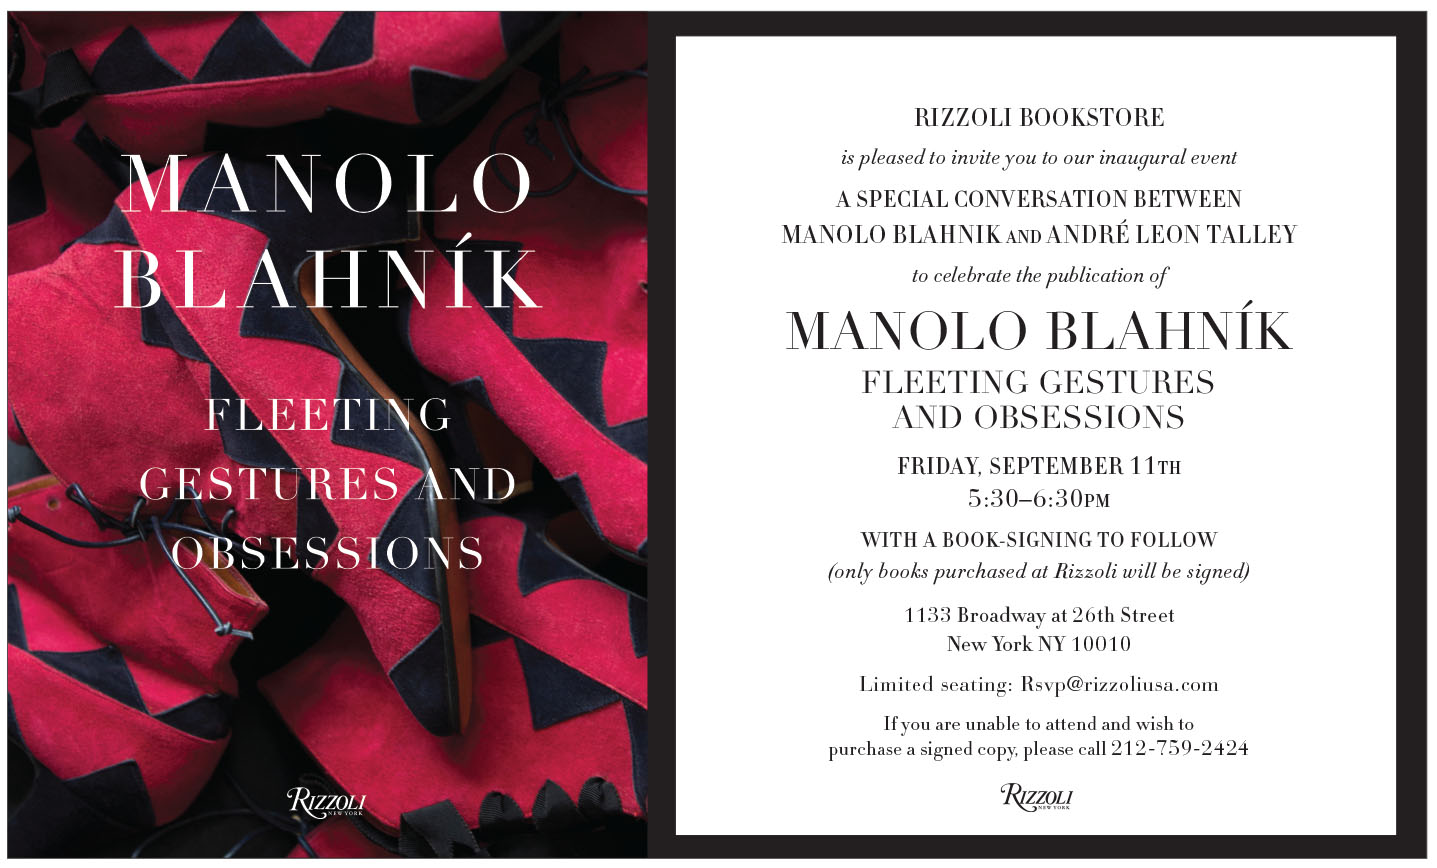 Manolo Blahnik Book Signing And Conversation With Andr Leon Talley